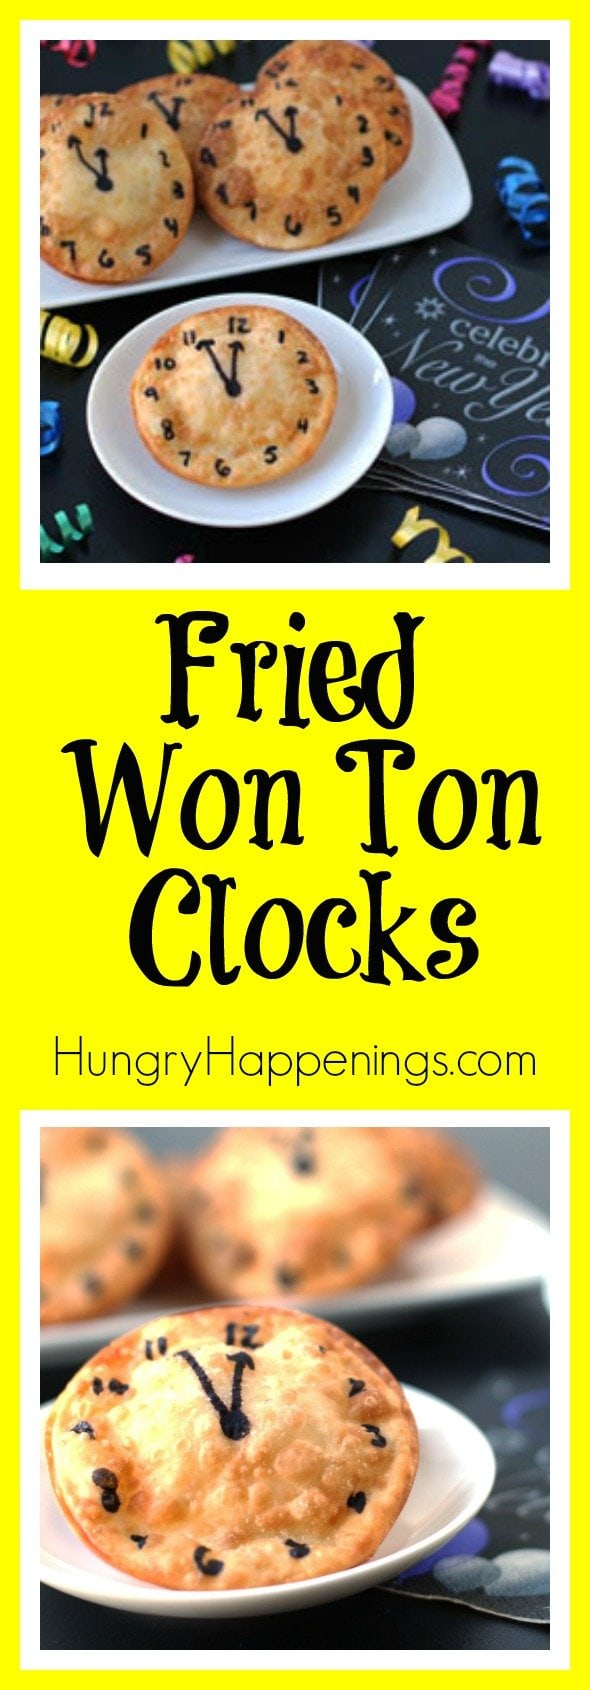 I've been staying on the clock themed food train since its New Year's Eve and these Cheese Filled Fried Won Ton Clocks will make you well known as the app master at any party!